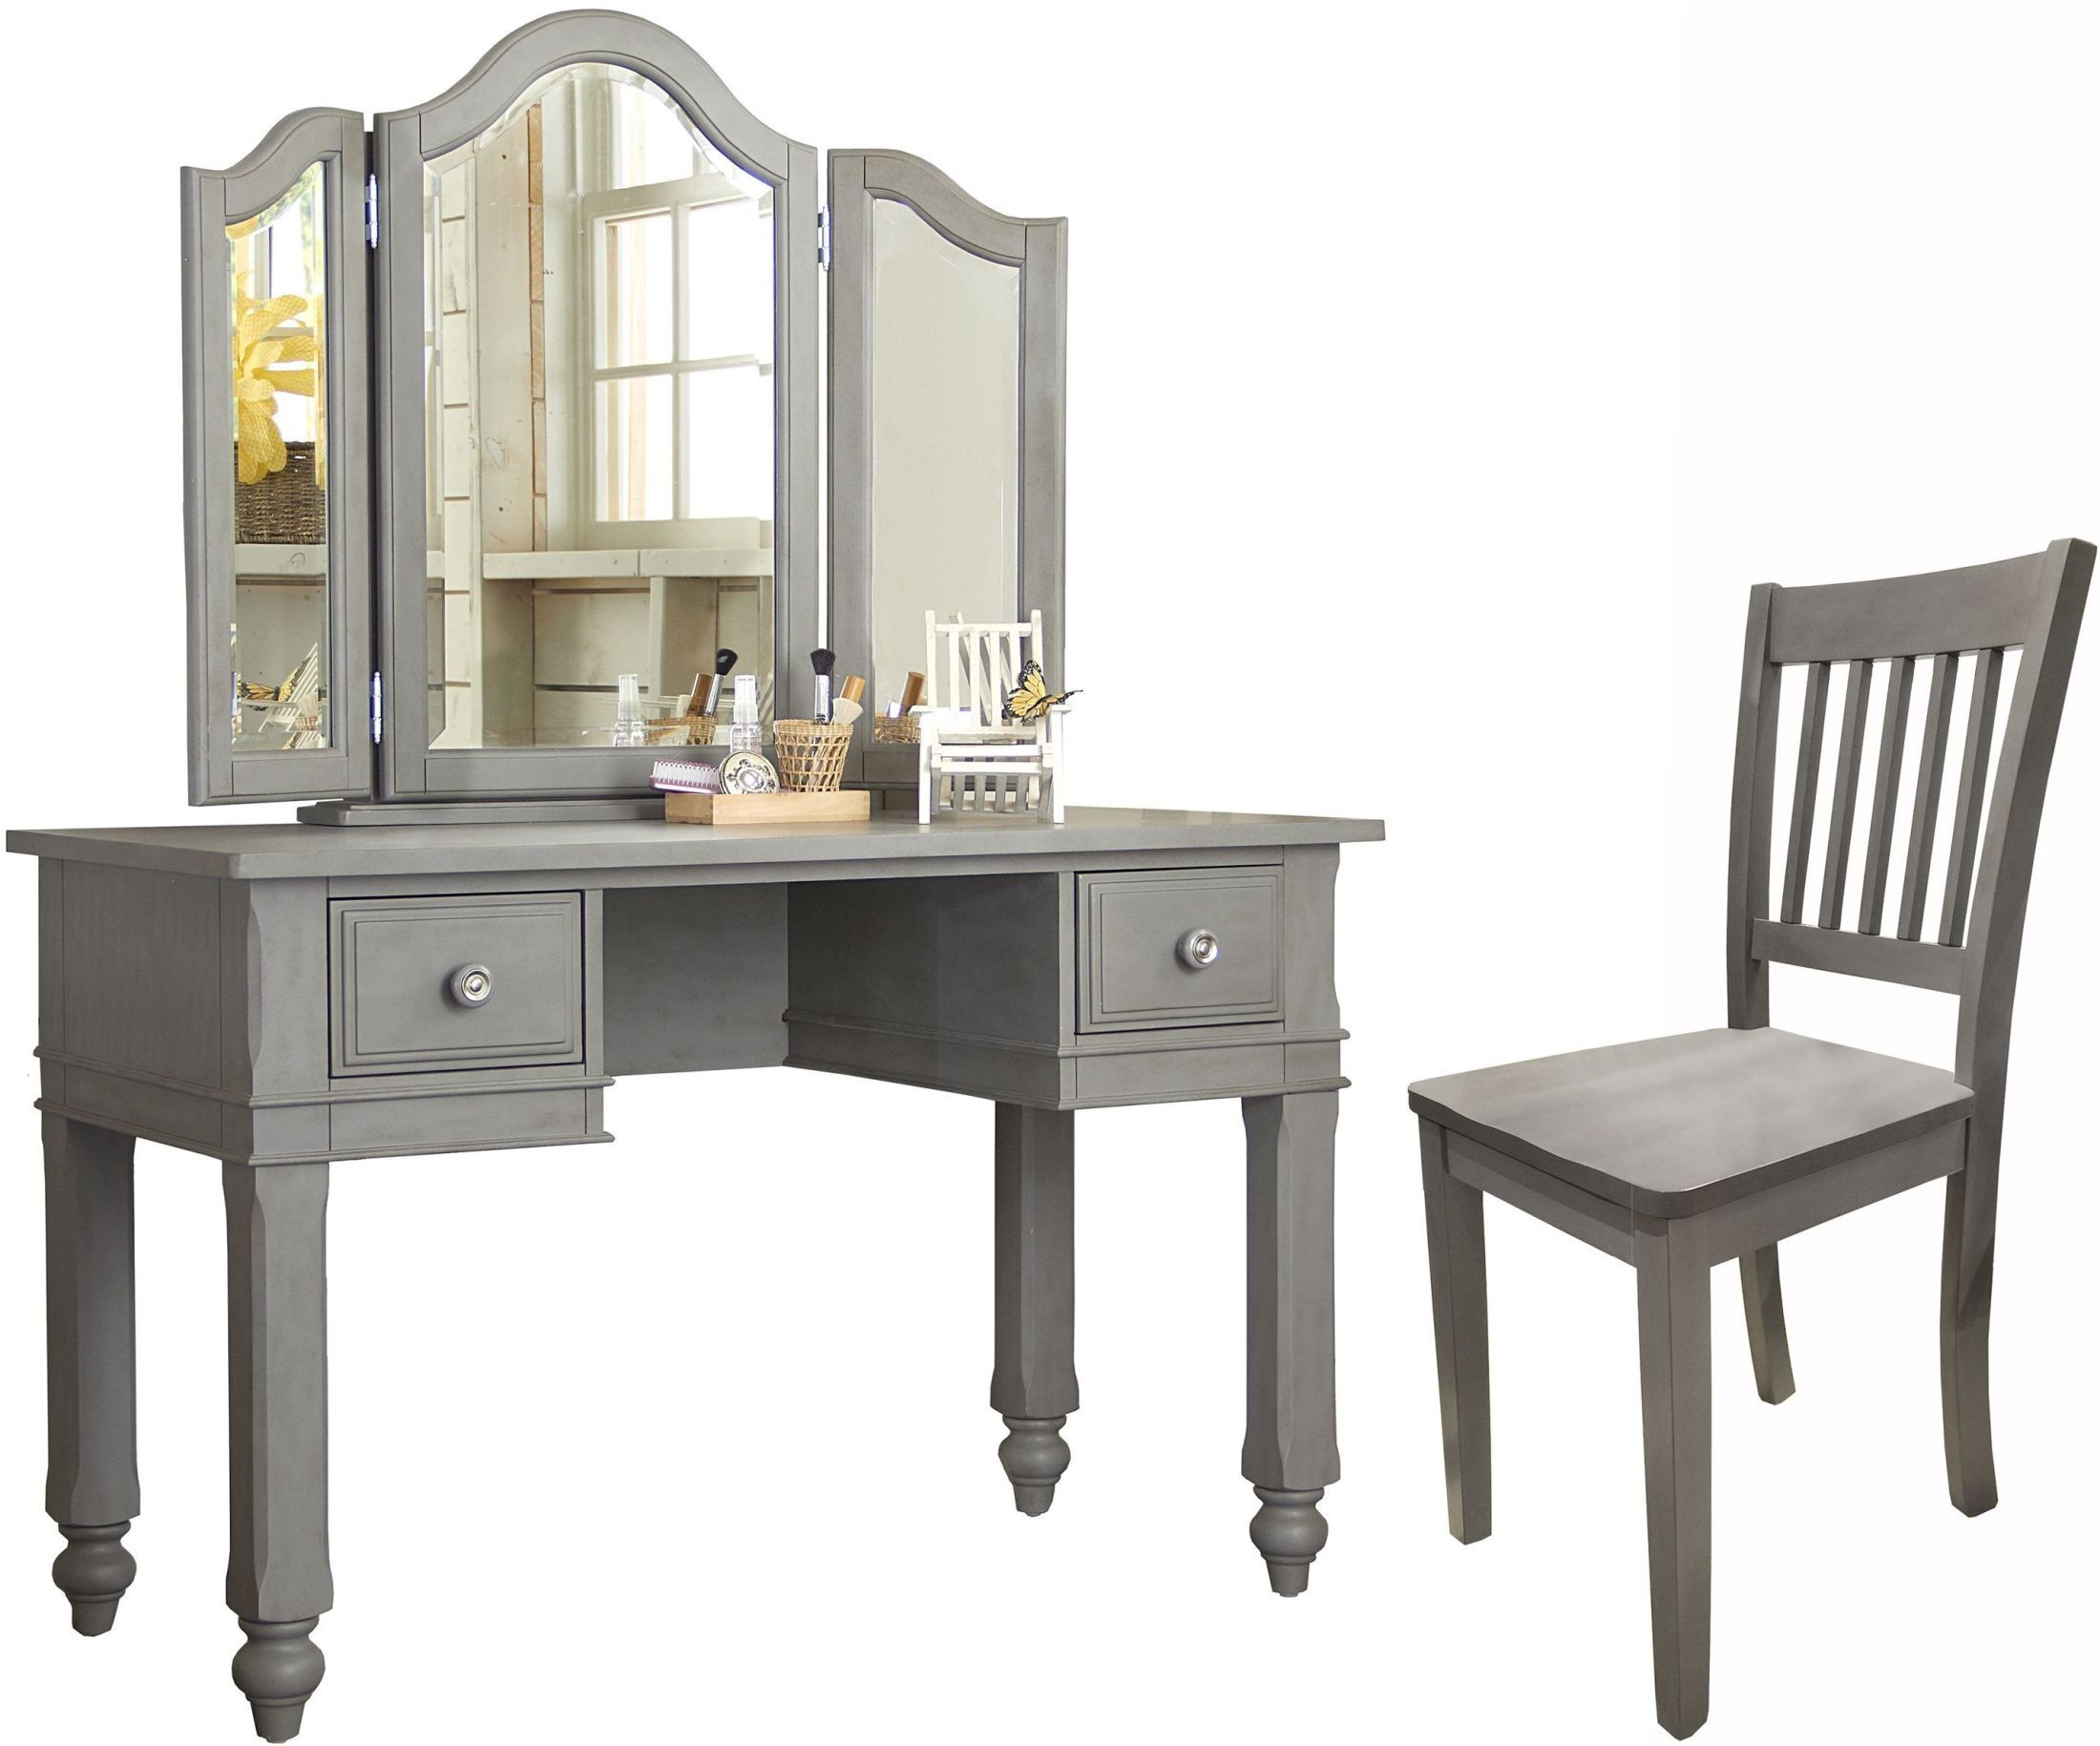 Lake house stone writing desk with vanity mirror chair for Vanity mirror and desk